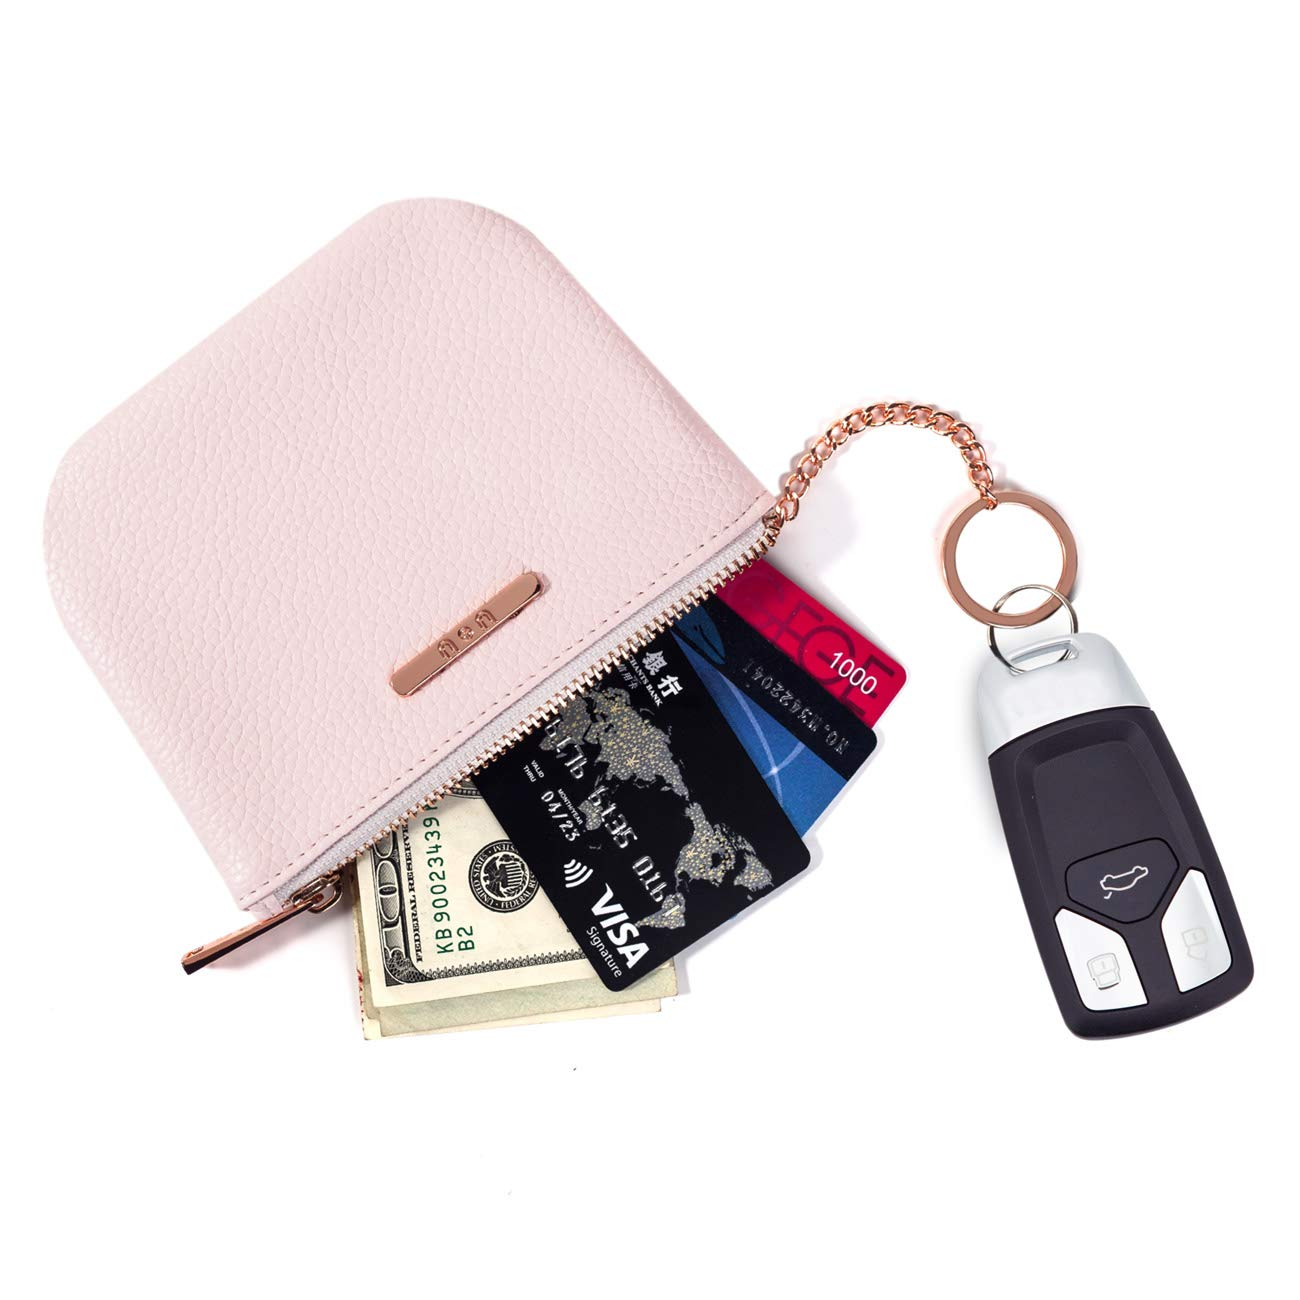 Womens Small Soft Coin Purse – PU Leather Zip Wallet with Key Ring New Year's Gifts – Pink